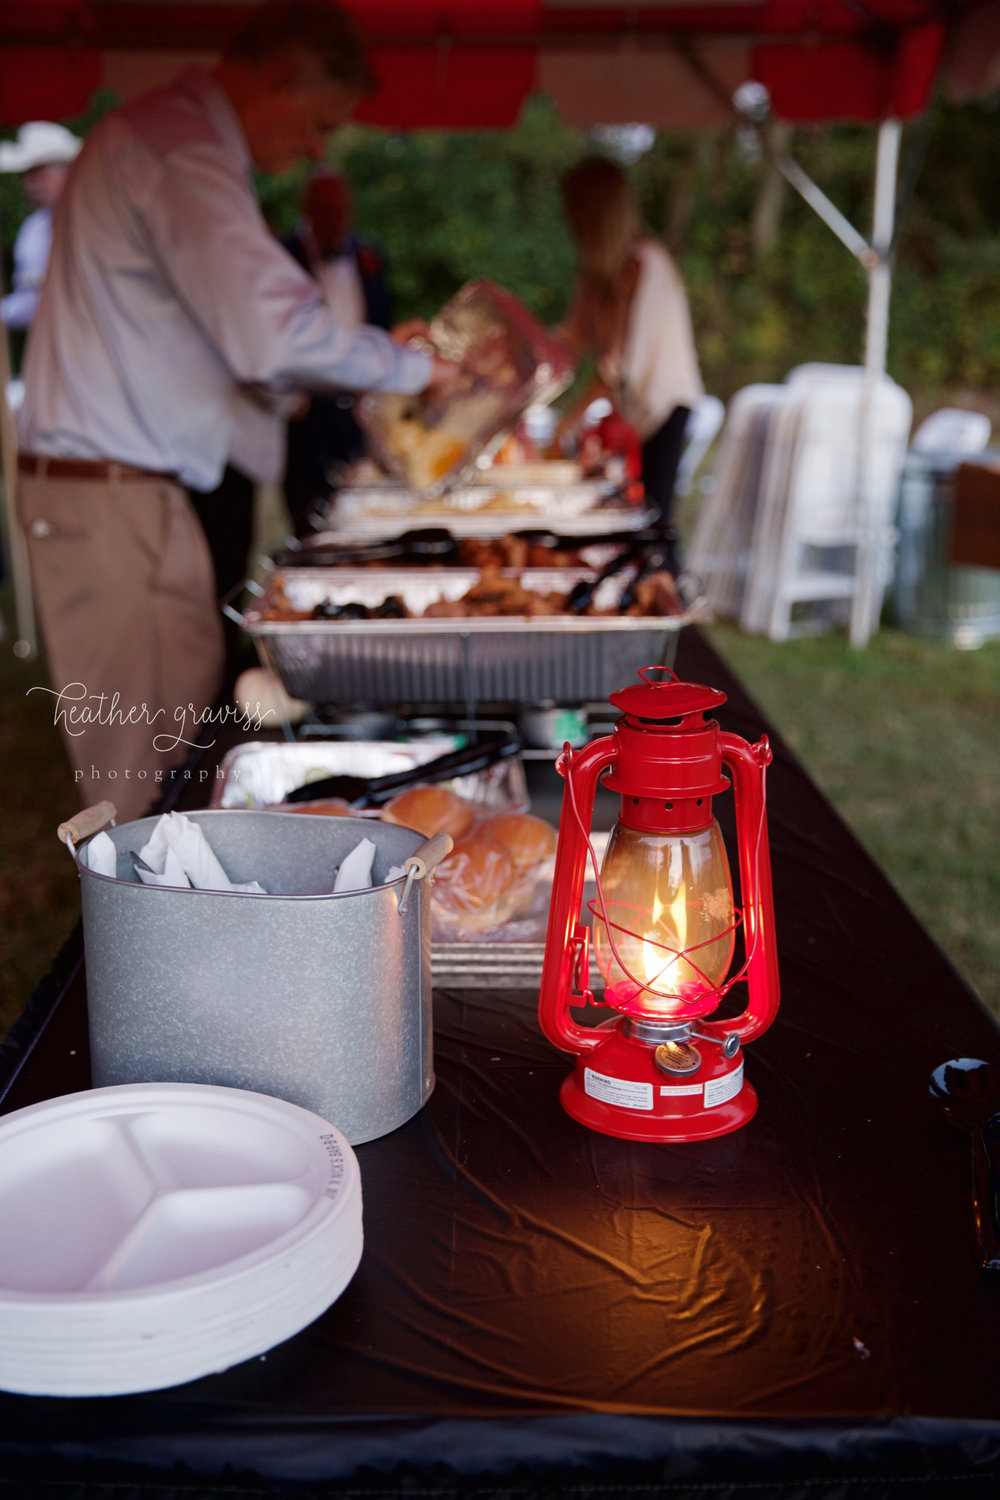 55 lantern-at-the-food-table.jpg